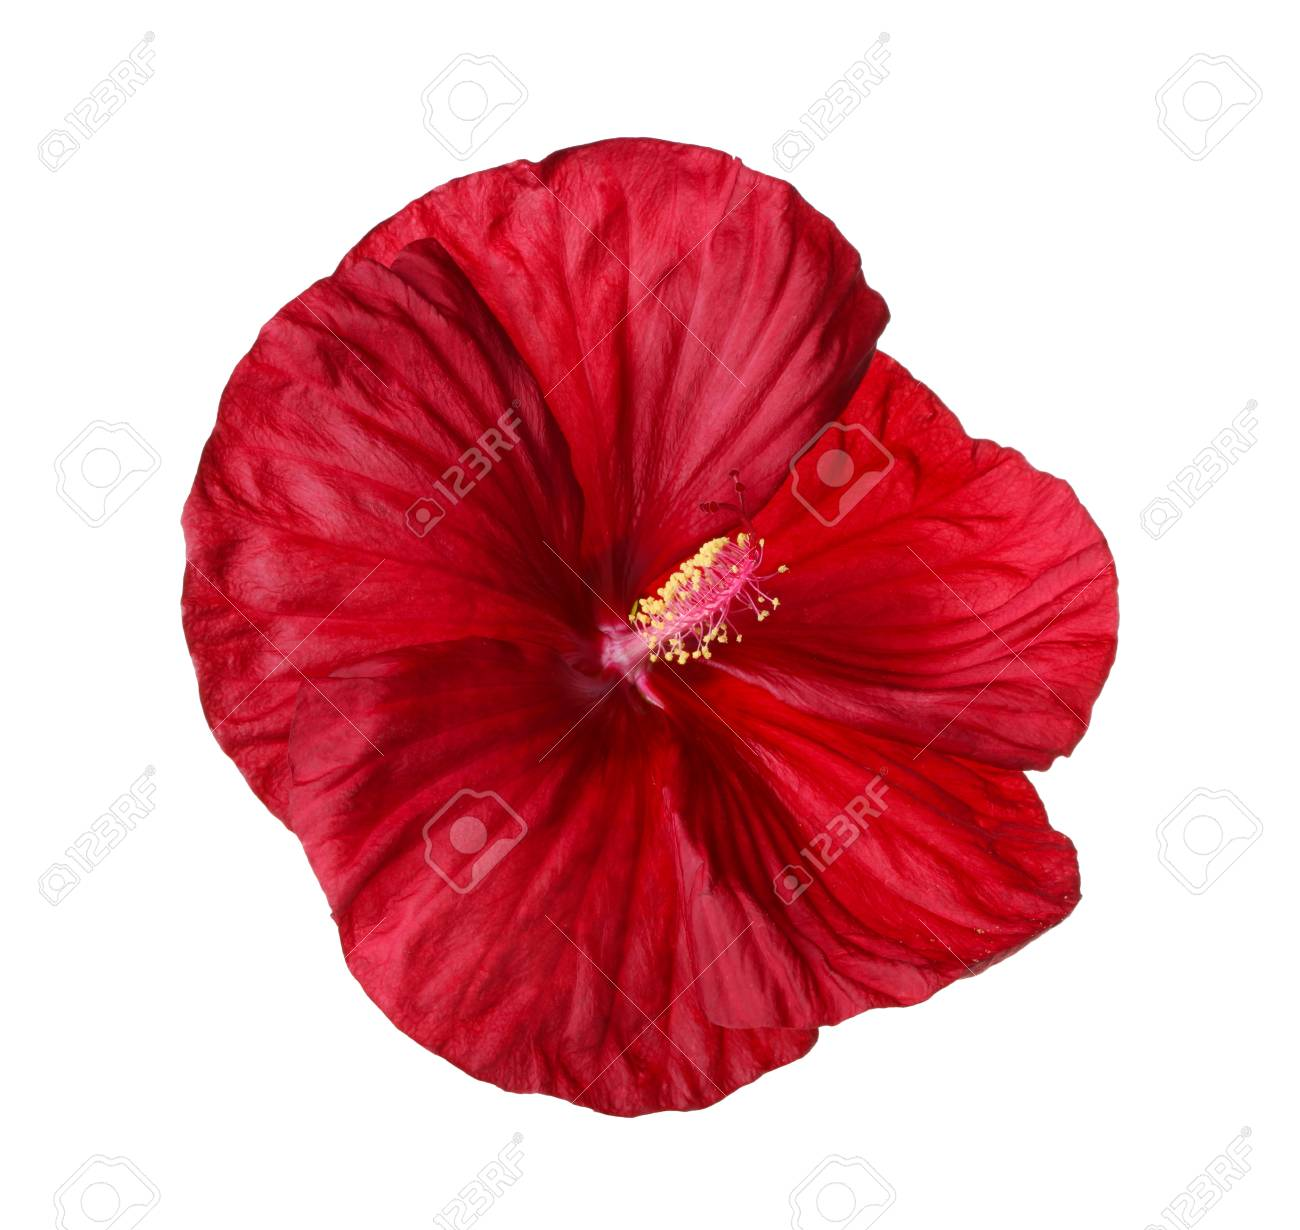 Single Flower Of A Deep Red Hibiscus Hibiscus Moscheutos Hybrid